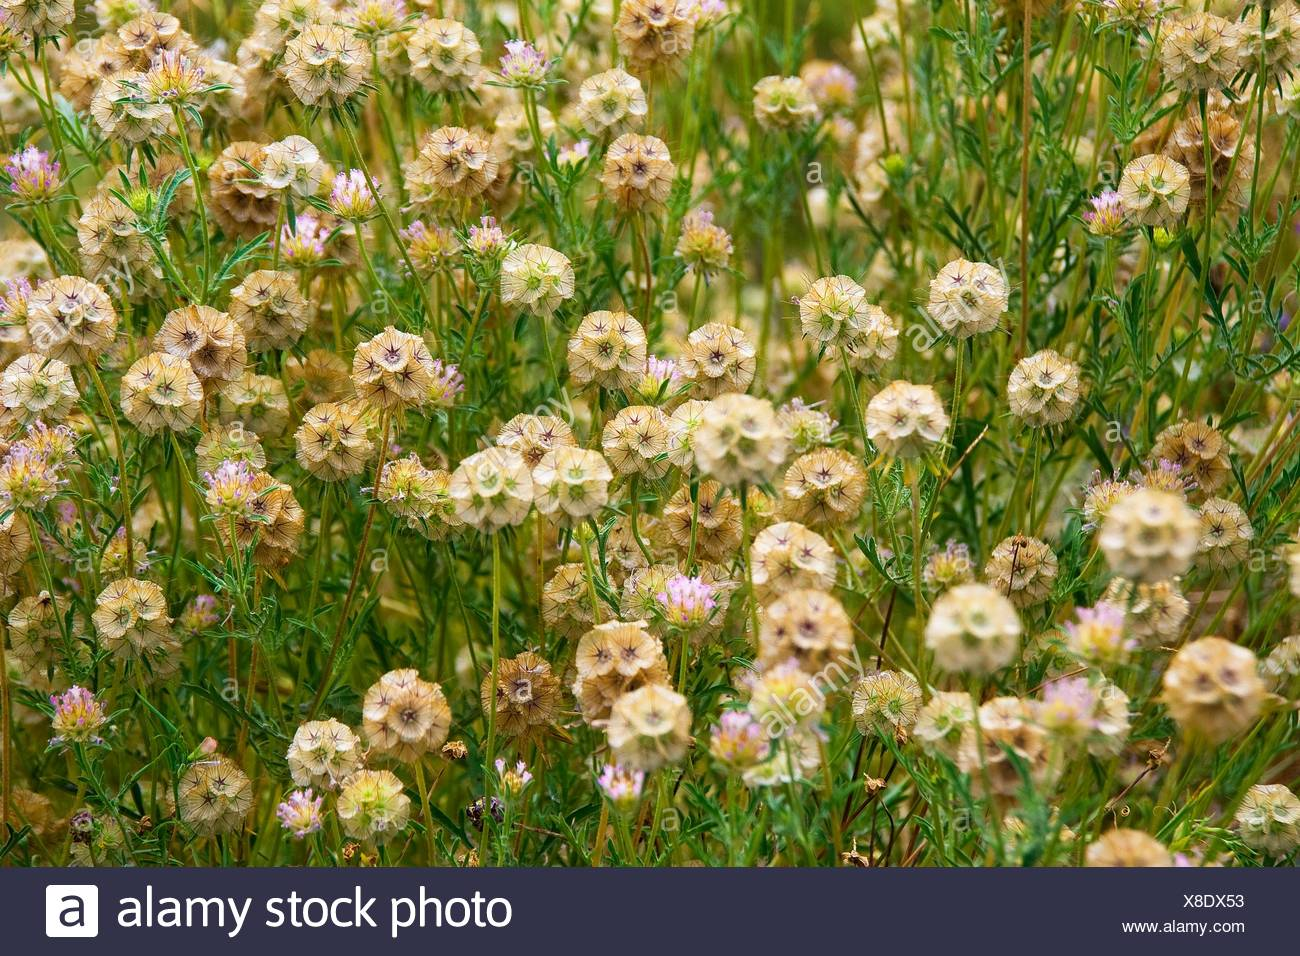 Scabiosa stellata, Starflower pincushions. Photo taken in Solsonès, Lleida, Spain, Europe Stock Photo